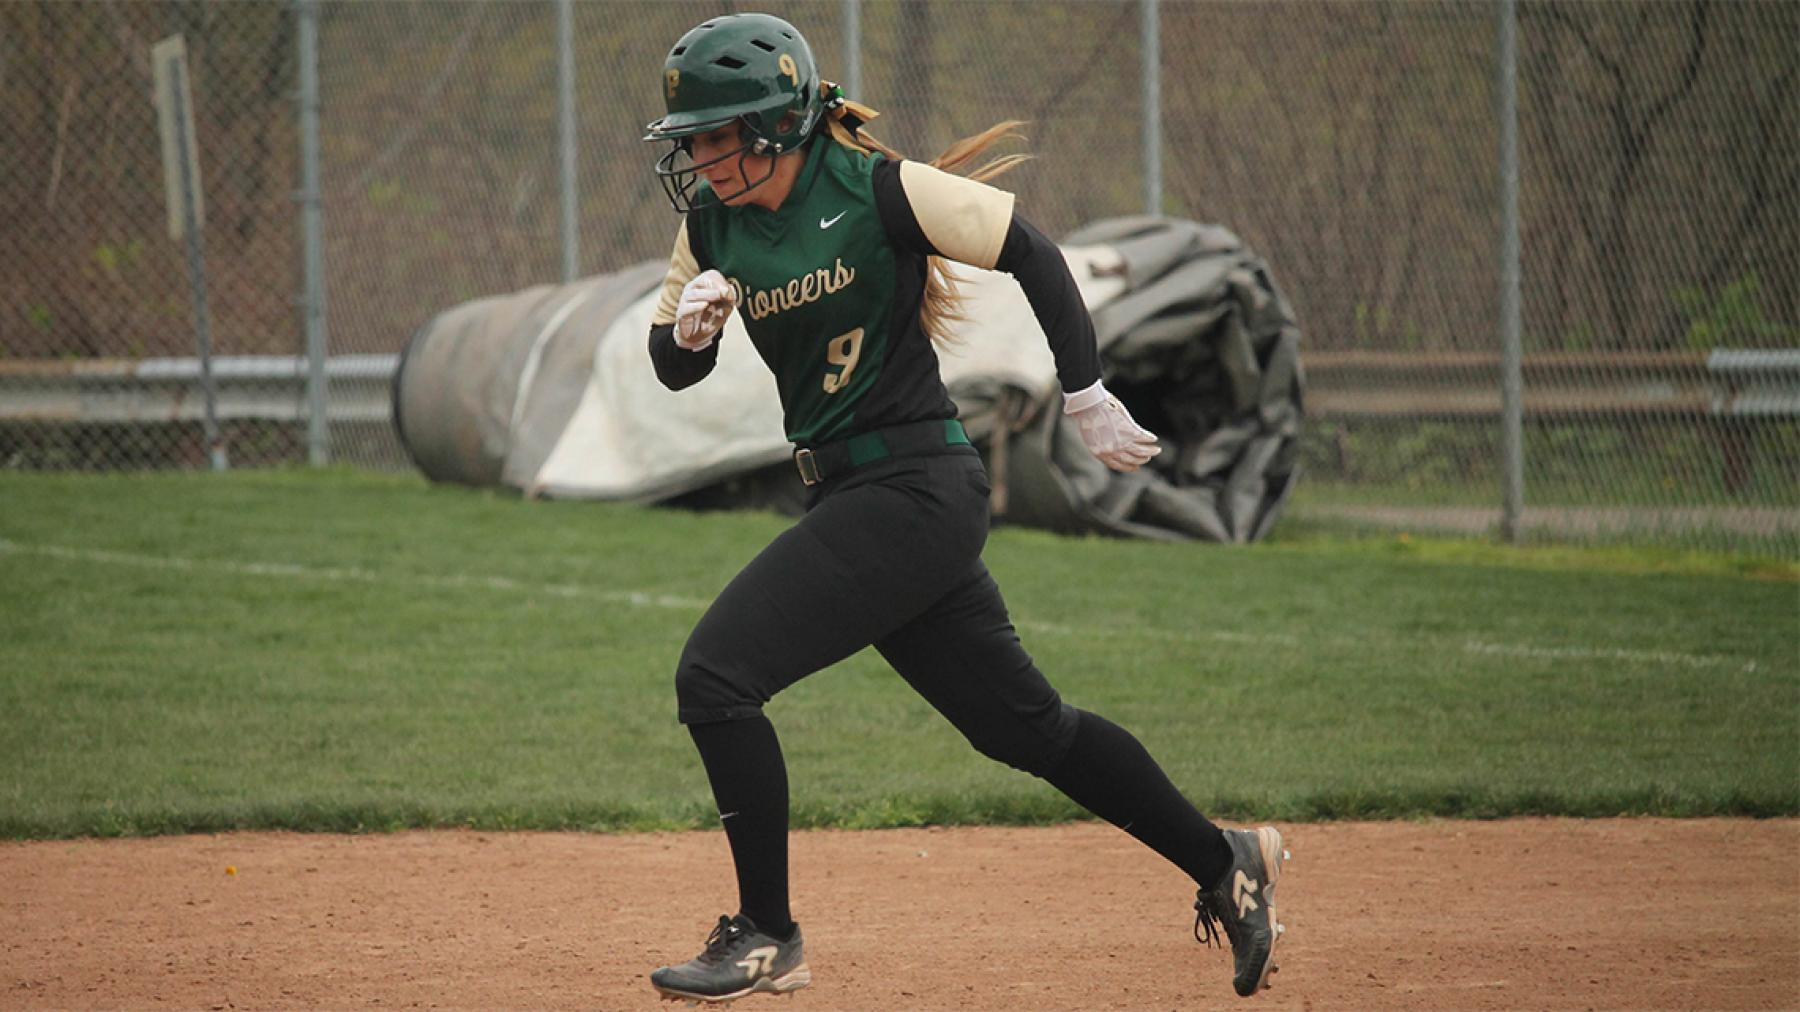 RSC Game of the Week: Point Park Softball splits with IU Southeast